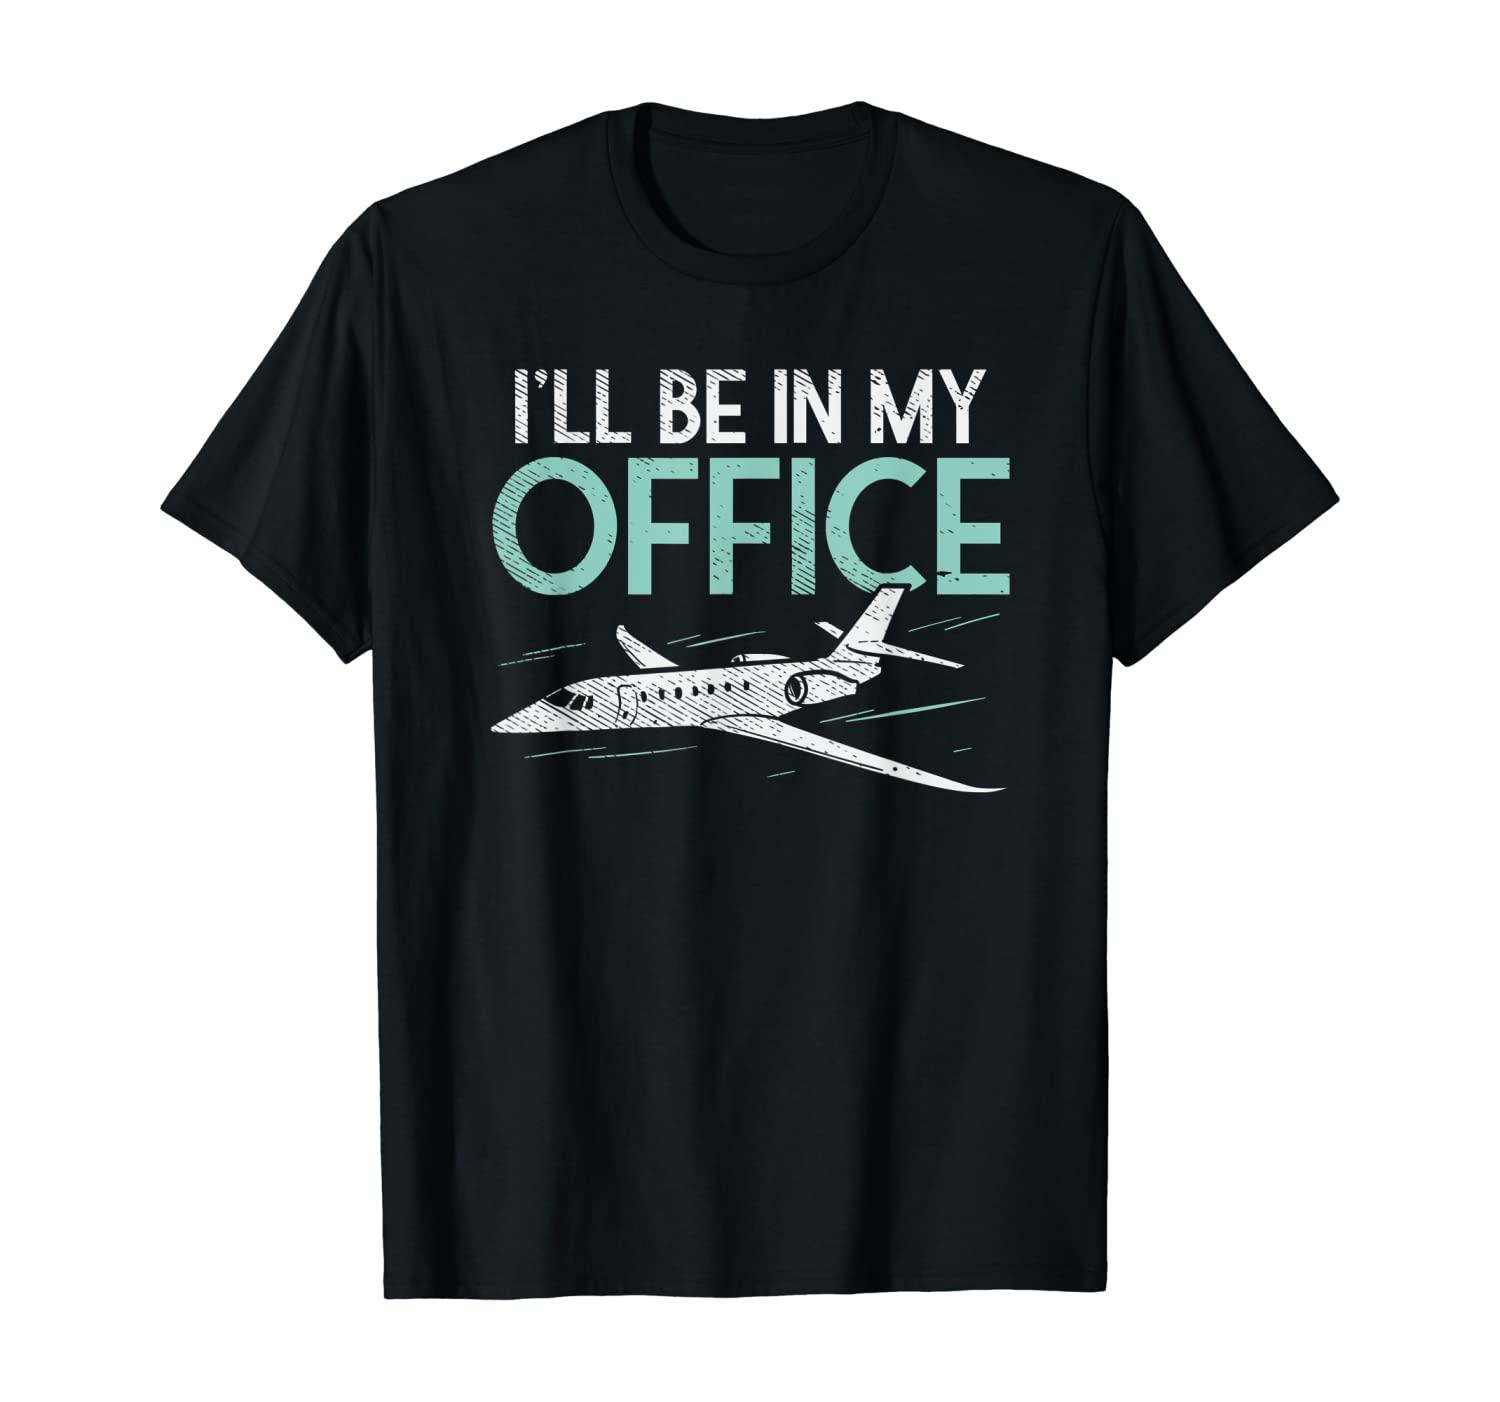 Pilot Aviation Gifts | Funny I'll Be In My Office Pilot T-Shirt